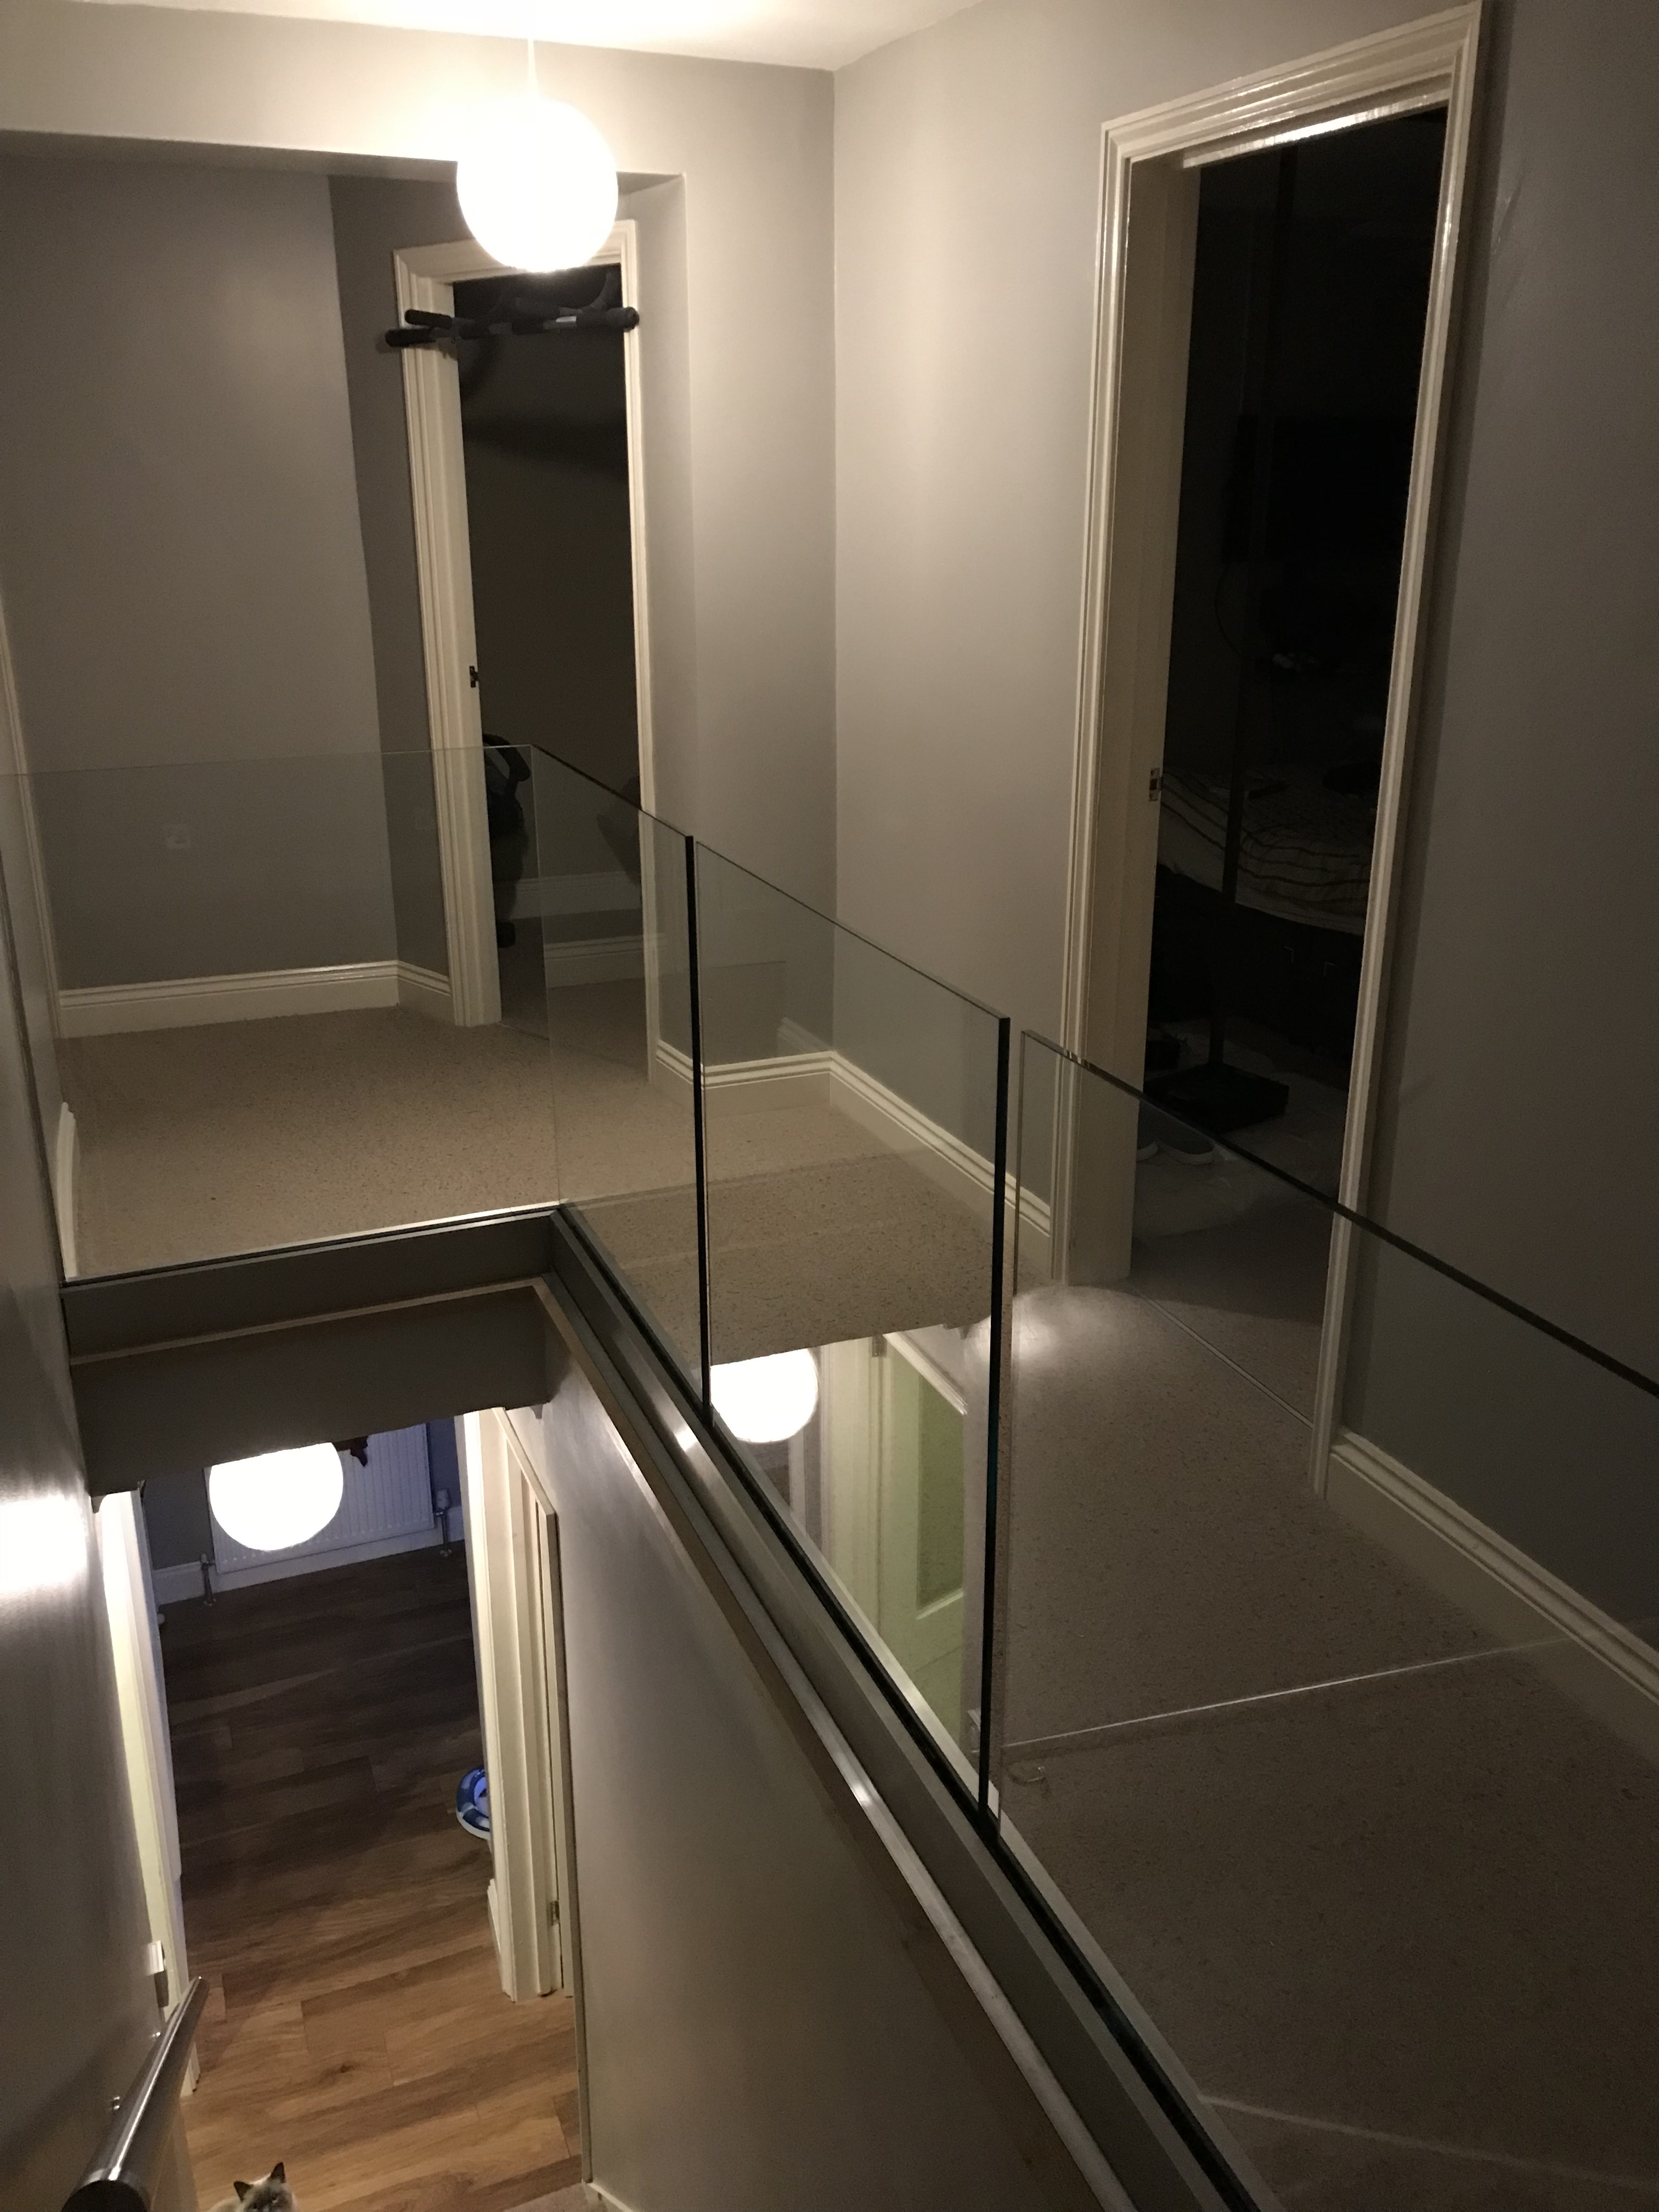 Vantage balustrades supplied there glass balustrade system for this landing area in London